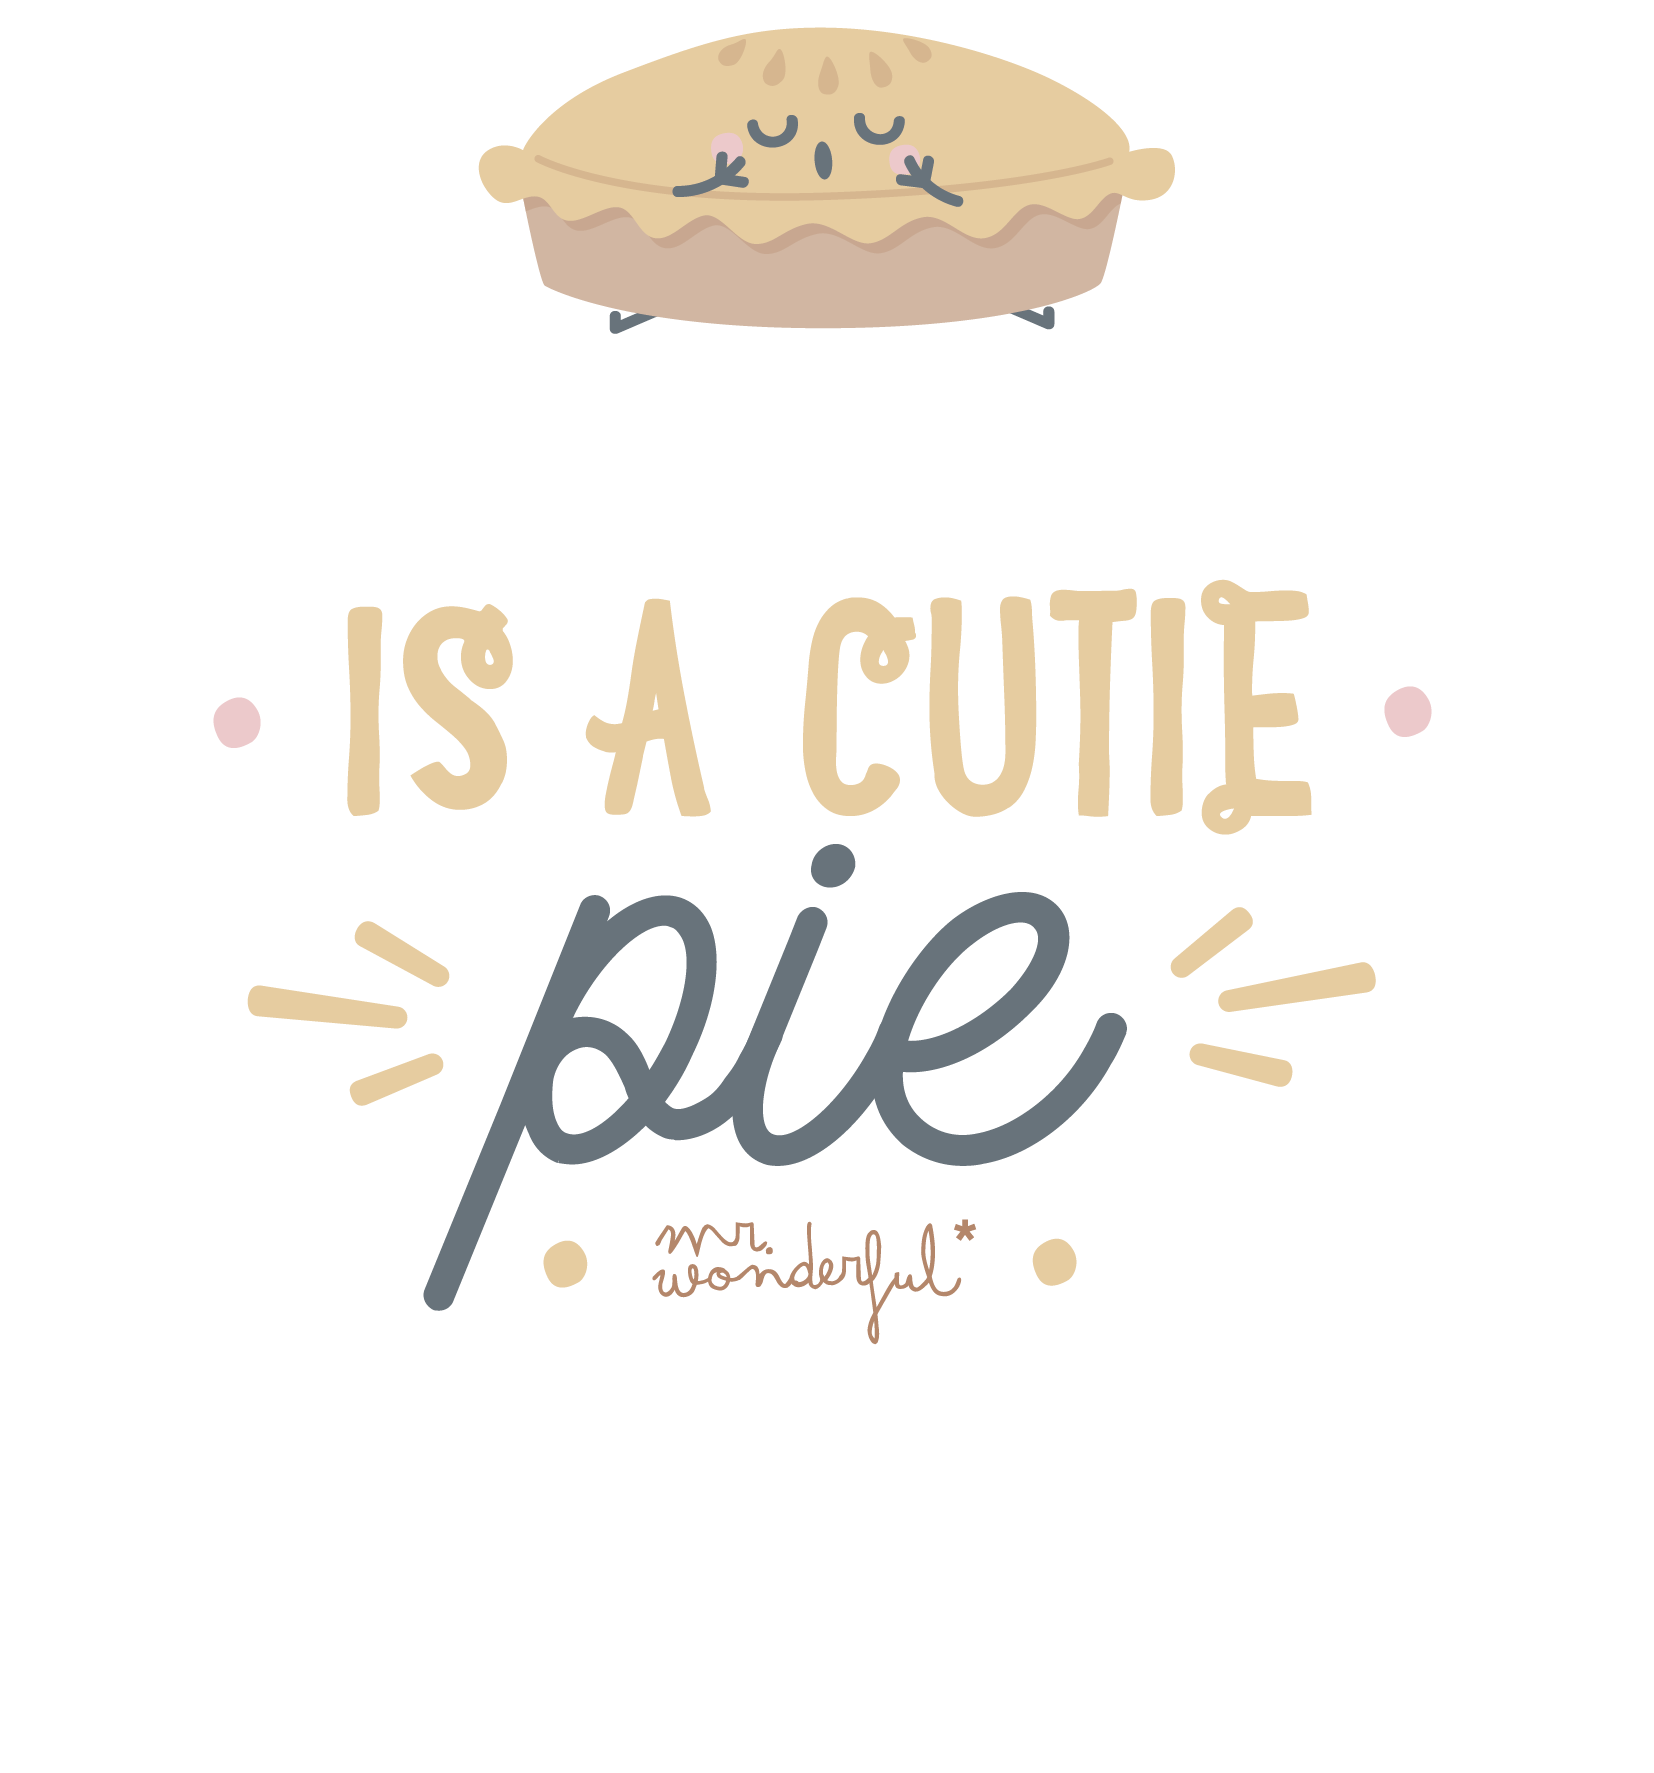 I'm a cuttie pie